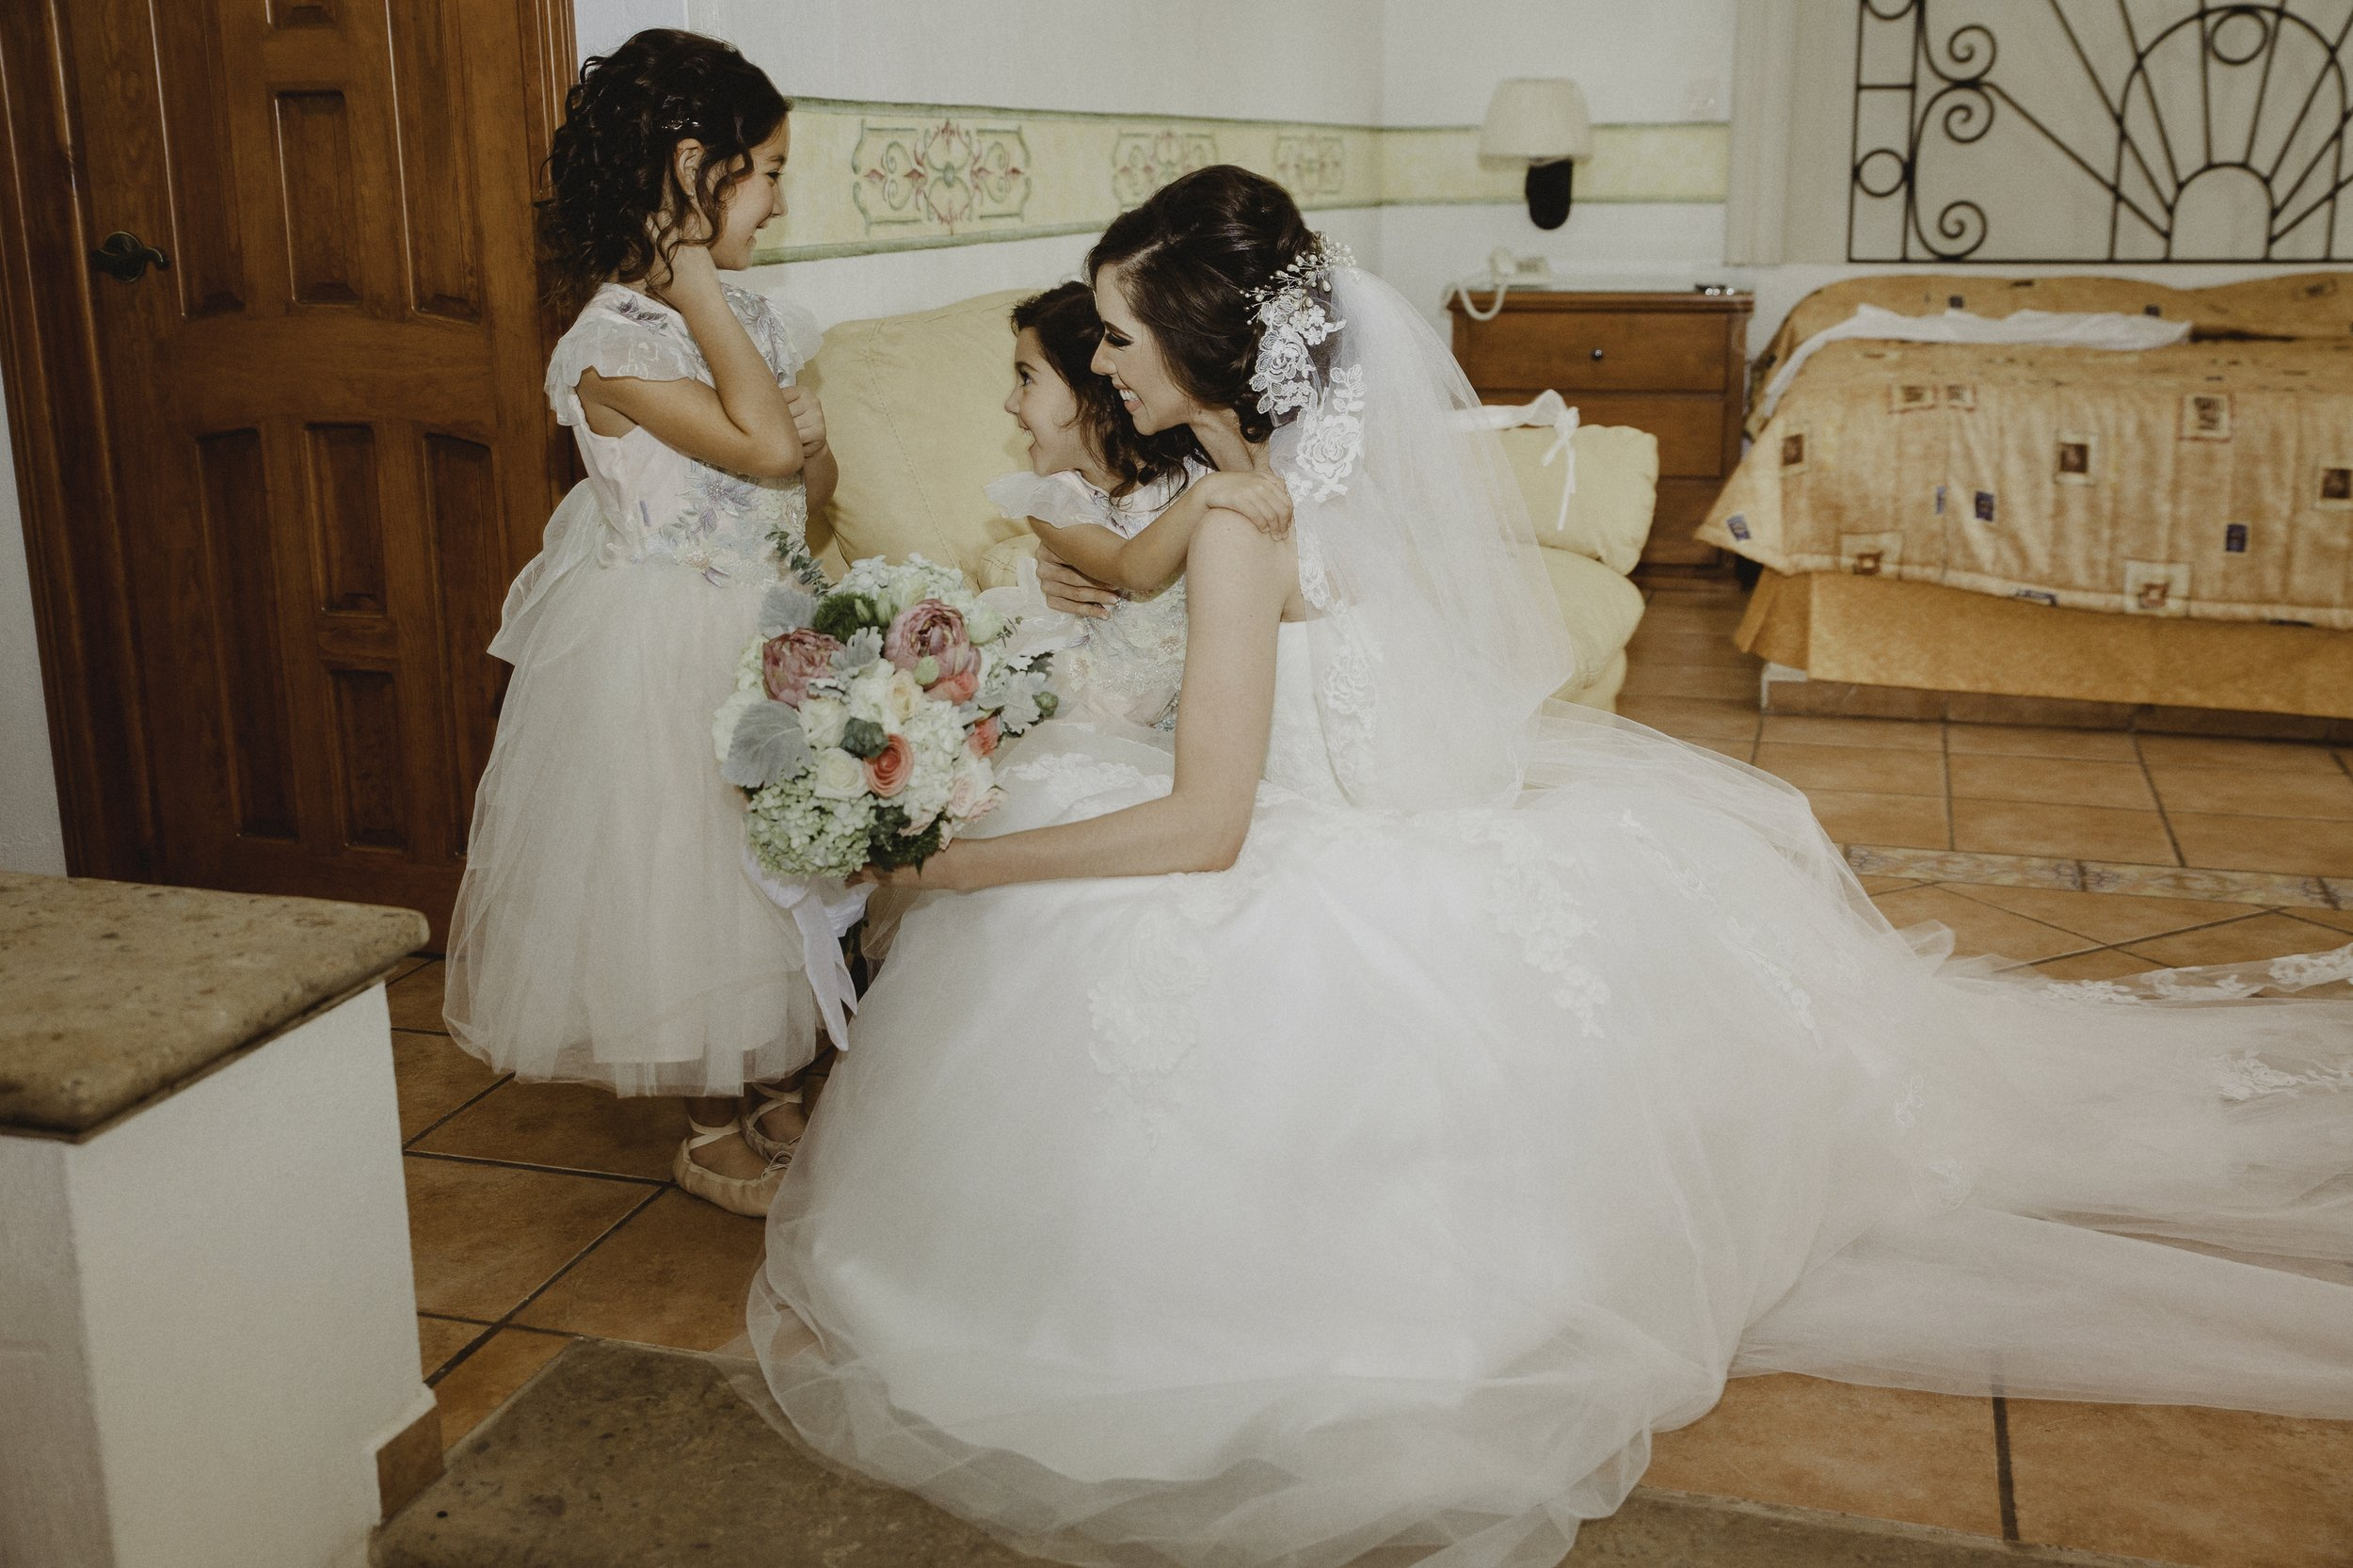 ODEMARIS_DANIEL-22carotida_photographer_boda_wedding.jpg